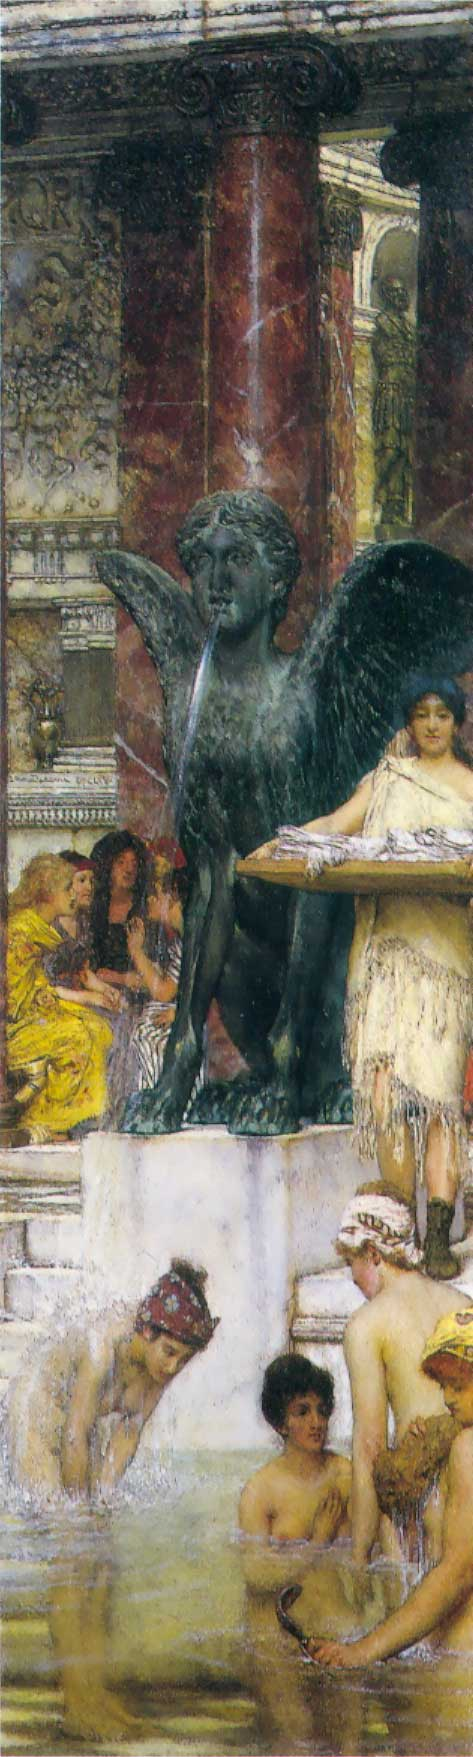 A Bath (An Antique Custom) | Lawrence Alma-Tadema | Oil Painting